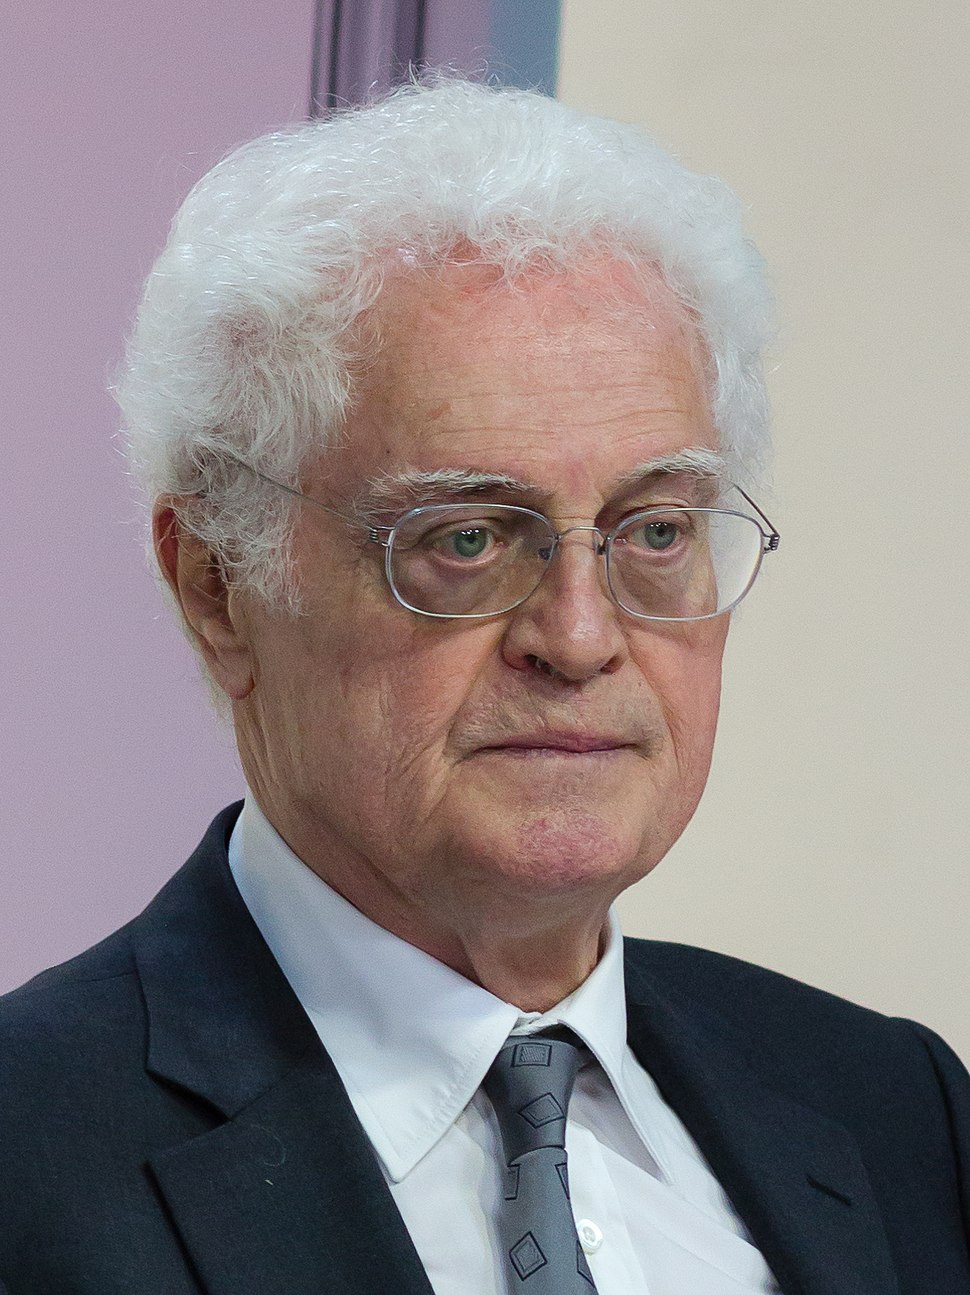 Lionel Jospin, mai 2014, Rennes, France (cropped)